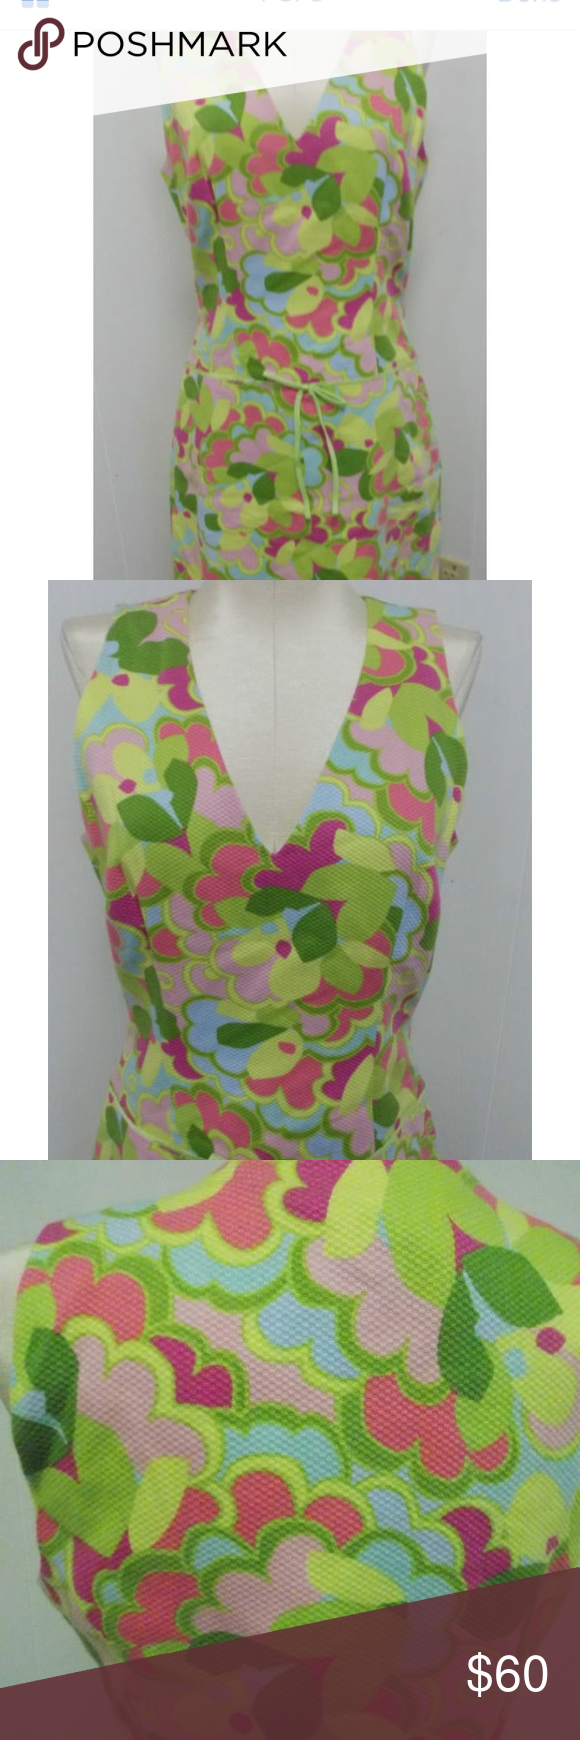 """Sigrid Olsen Bright 60s Era Look Dress NWT Adorable mod look classic dress!  Bright and colorful.  100% cotton, fully lined. Hidden side zipper.  Size 4 new excellent condition with tags. Bust up to 36"""". Waist up to 29"""". Length from shoulder to bottom 37"""" Sigrid Olsen Dresses"""